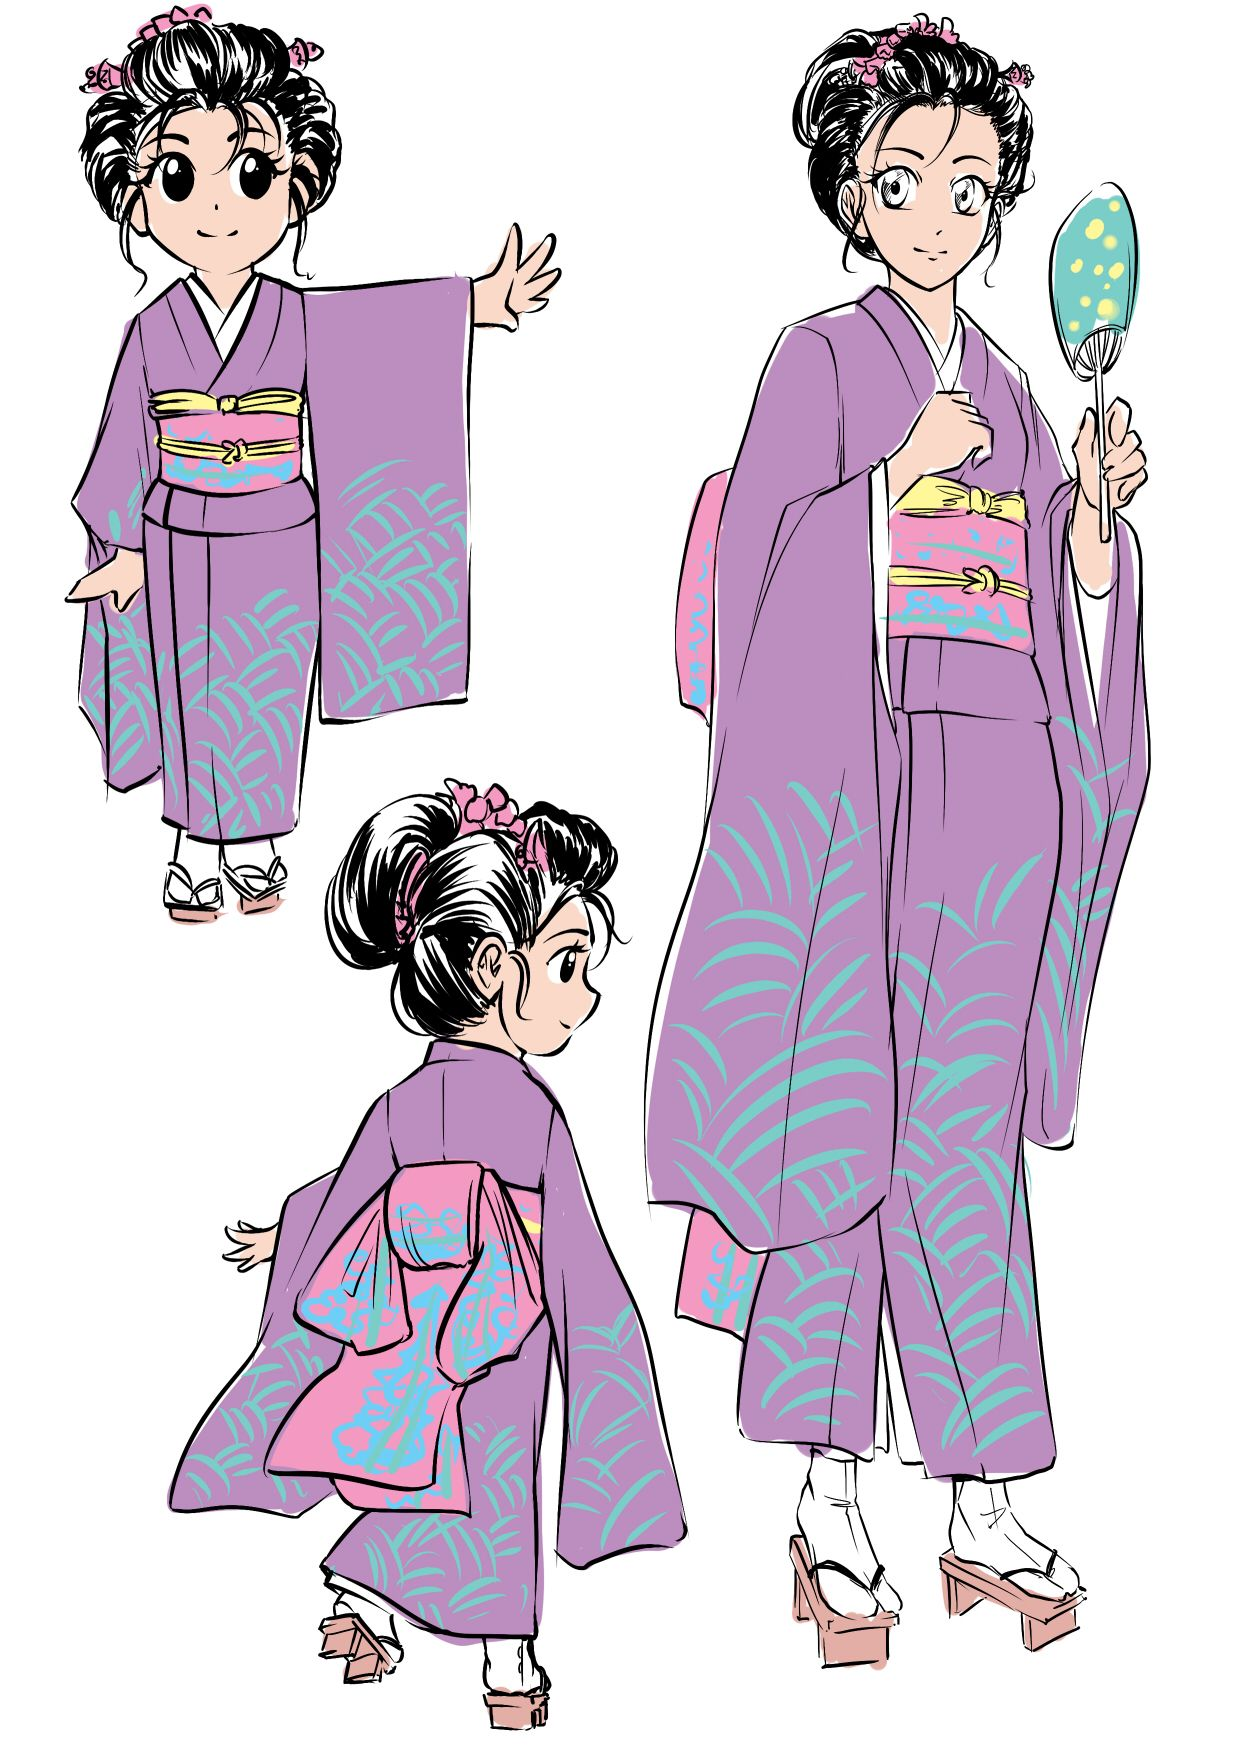 Manga Character Design: Feudal Japan | Letraset Blog - Creative Opportunities